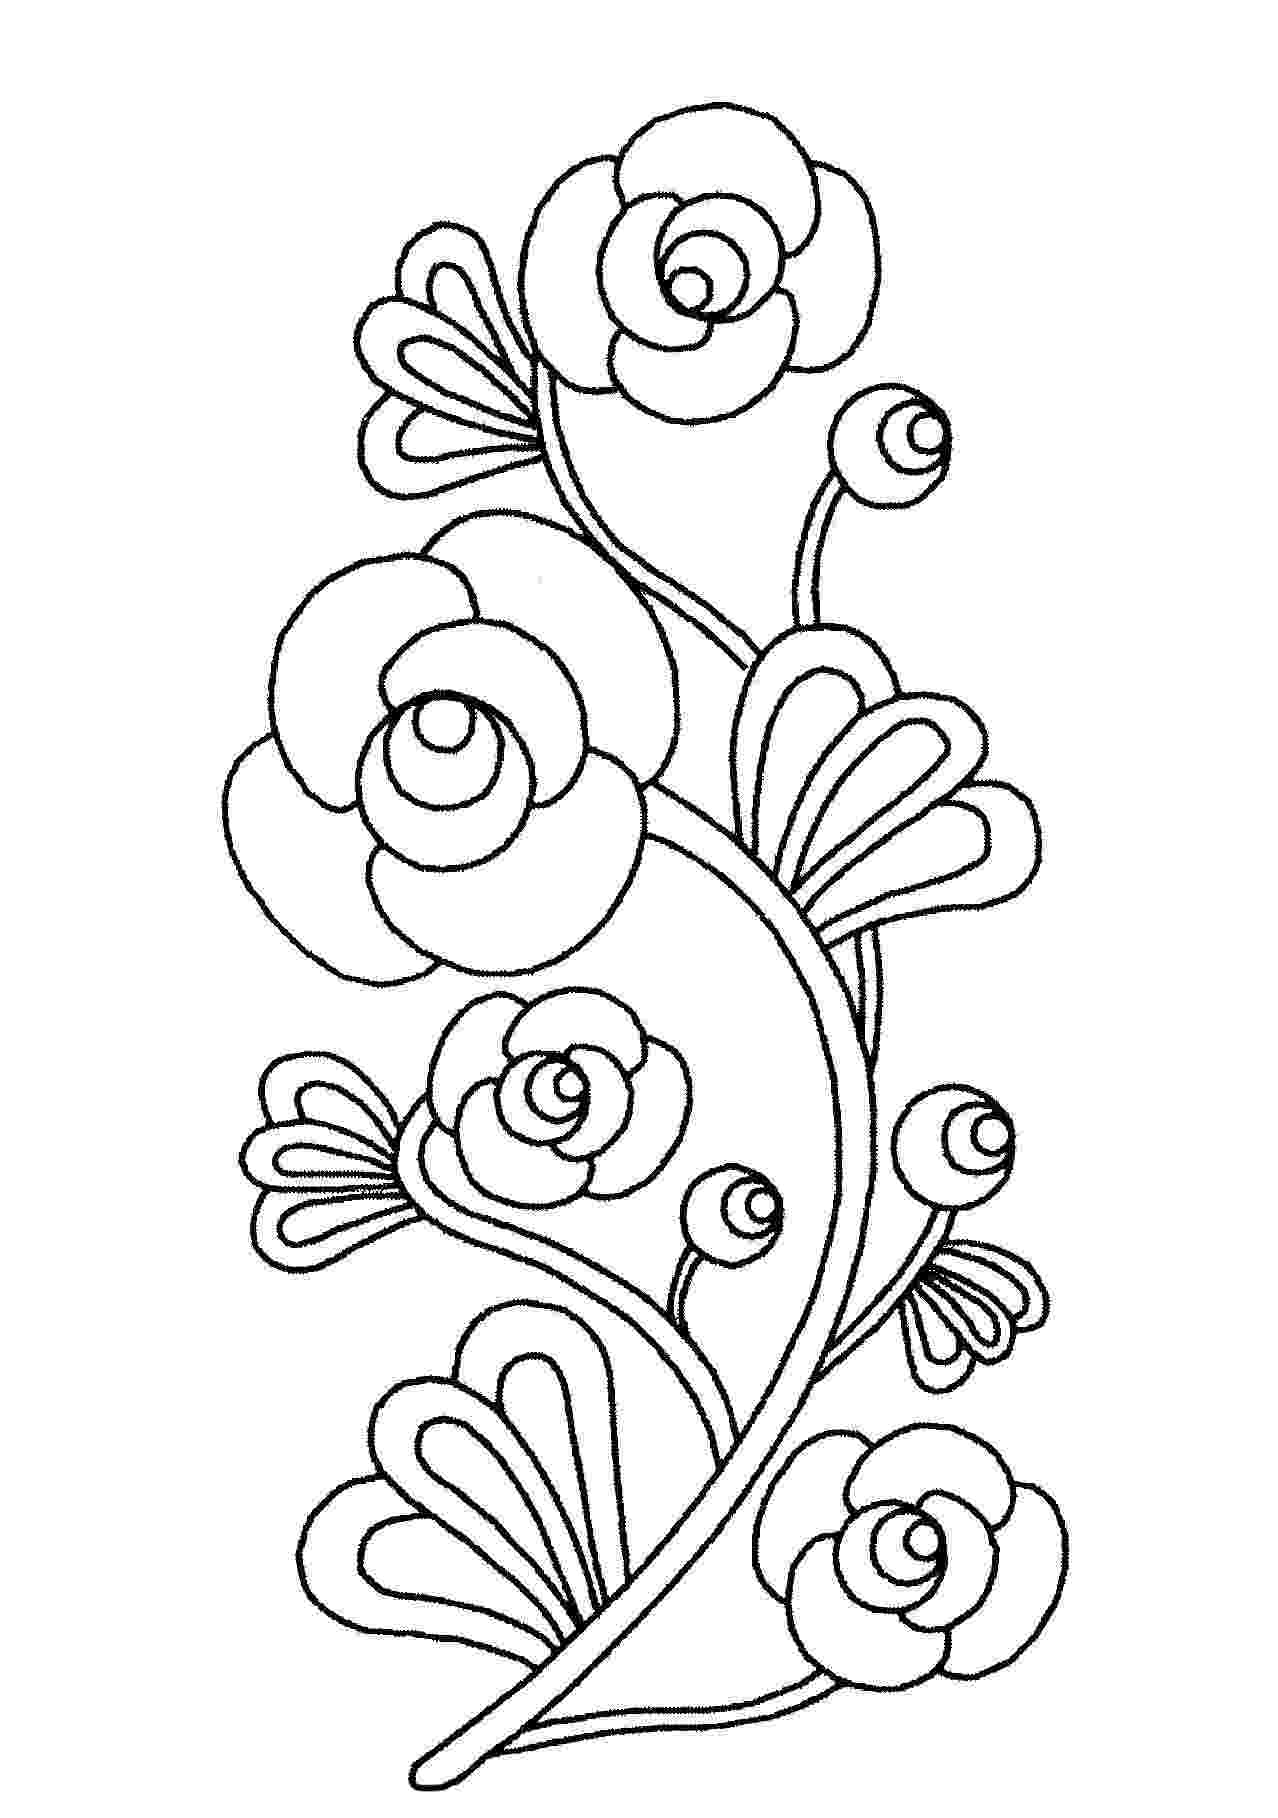 coloring pages of beautiful flowers beautiful flowers coloring pages for kids printable free of flowers pages beautiful coloring